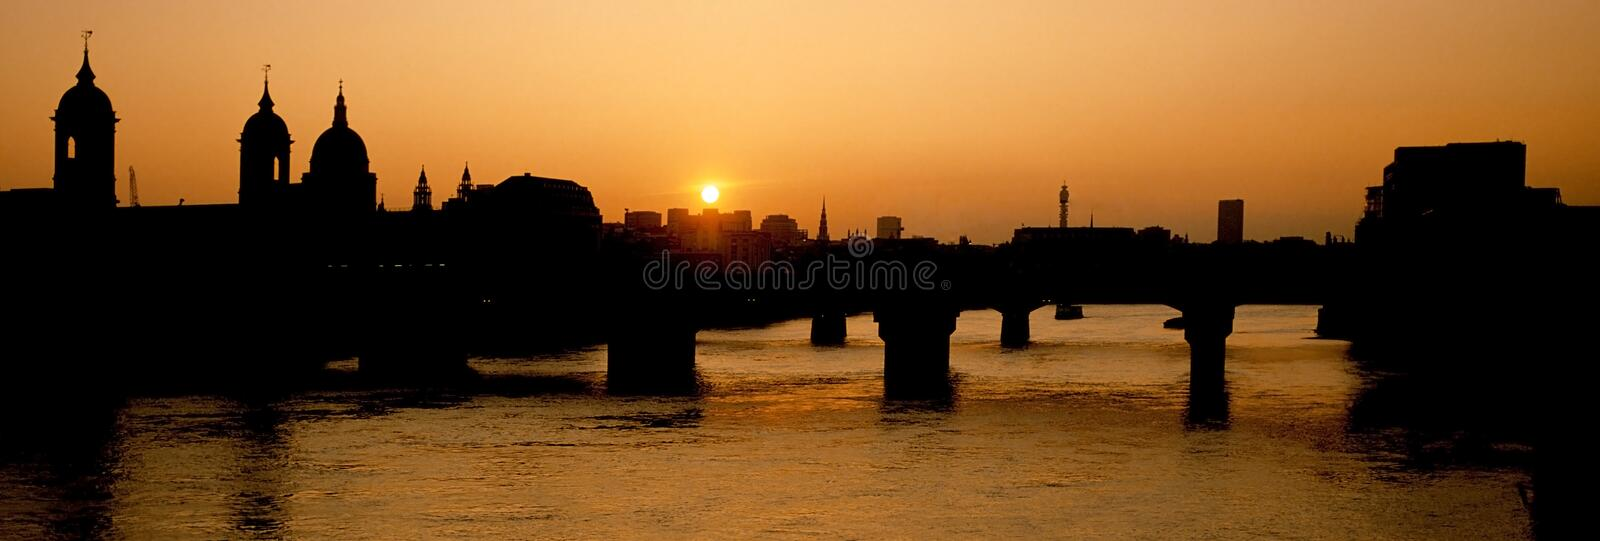 Sunset river thames royalty free stock image